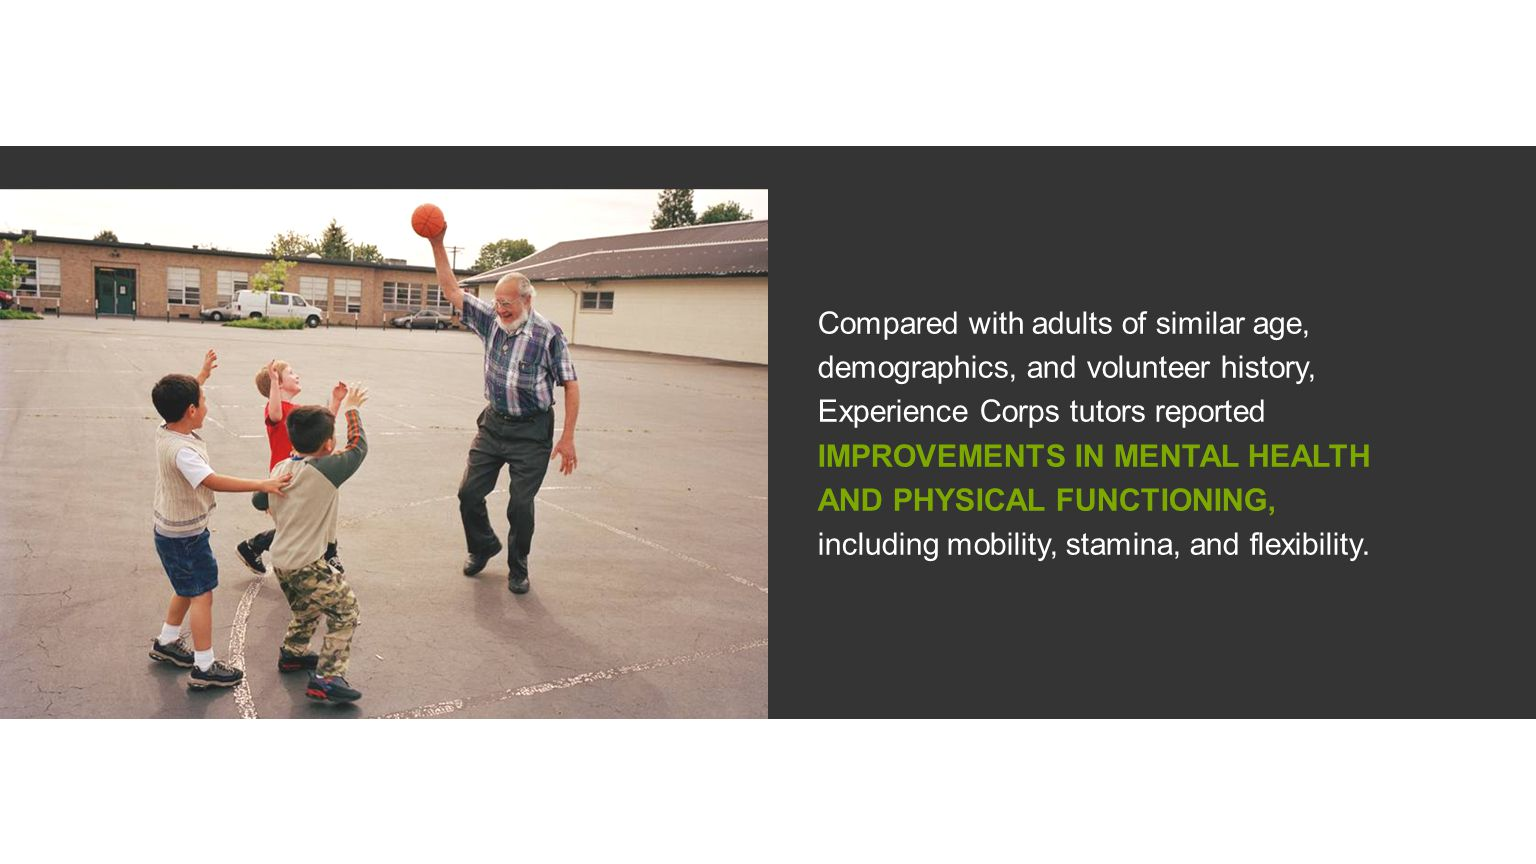 Compared with adults of similar age, demographics, and volunteer history, Experience Corps tutors reported IMPROVEMENTS IN MENTAL HEALTH AND PHYSICAL FUNCTIONING, including mobility, stamina, and flexibility.